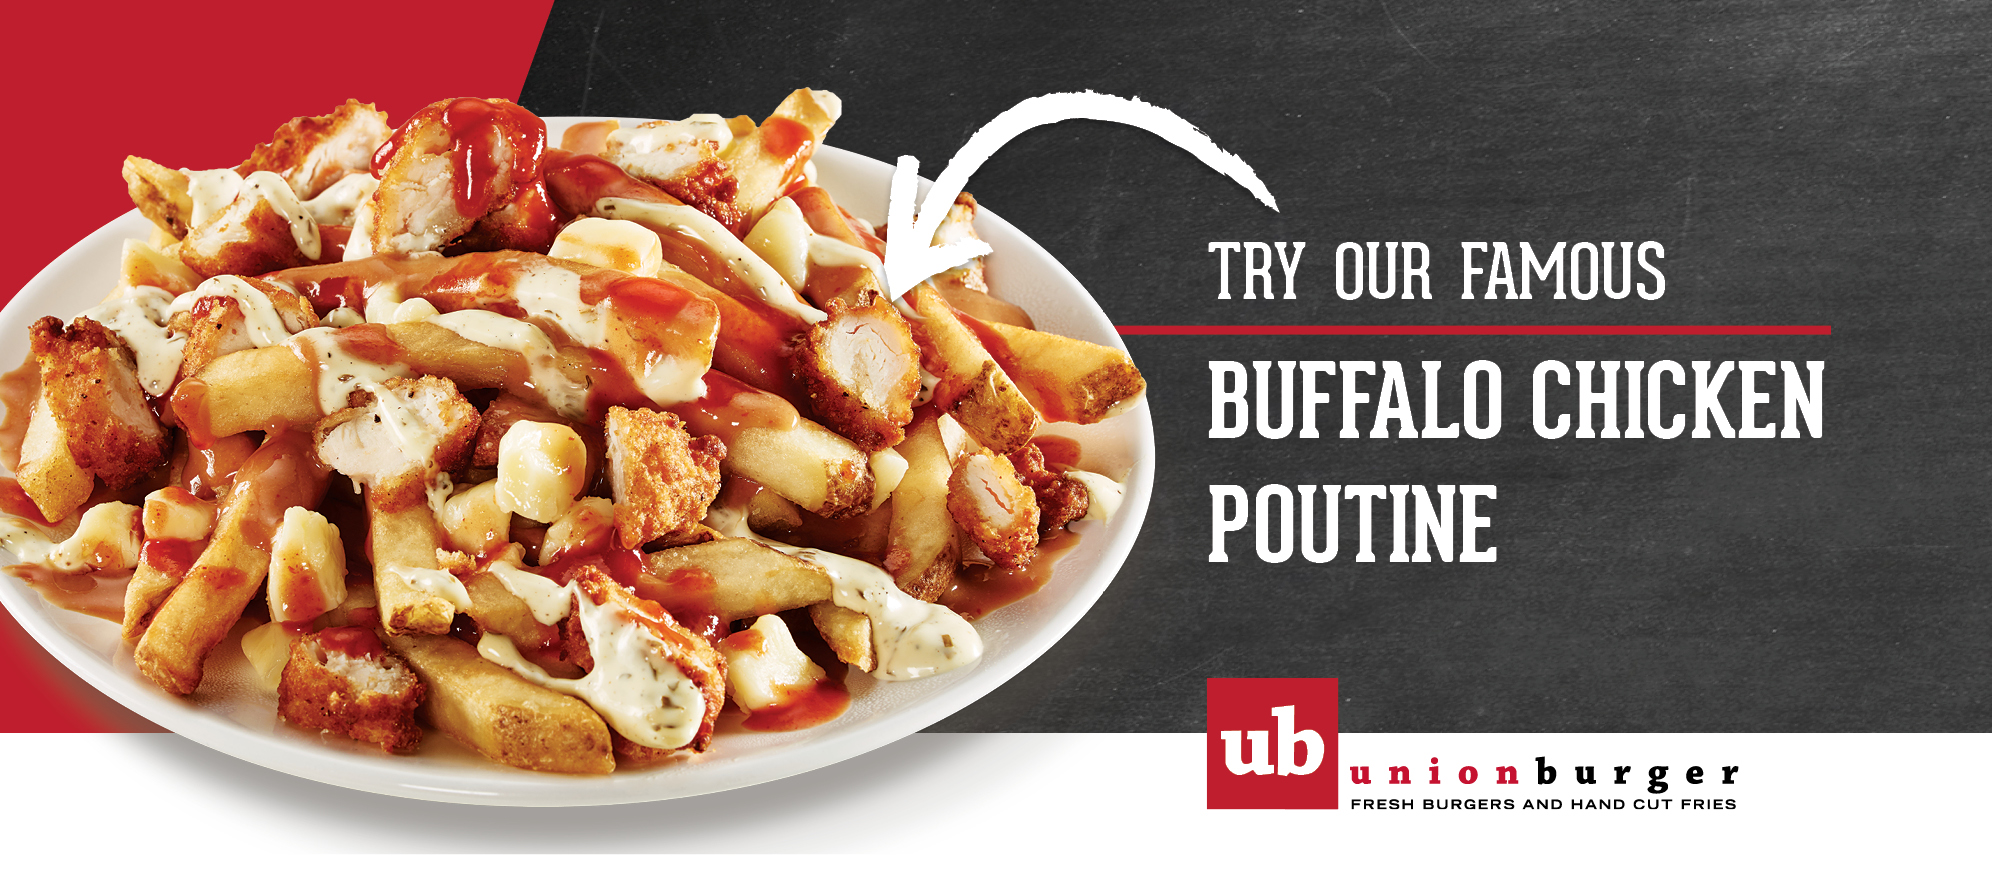 UB-Buff-chicken-poutine-Website-Carousel-0218